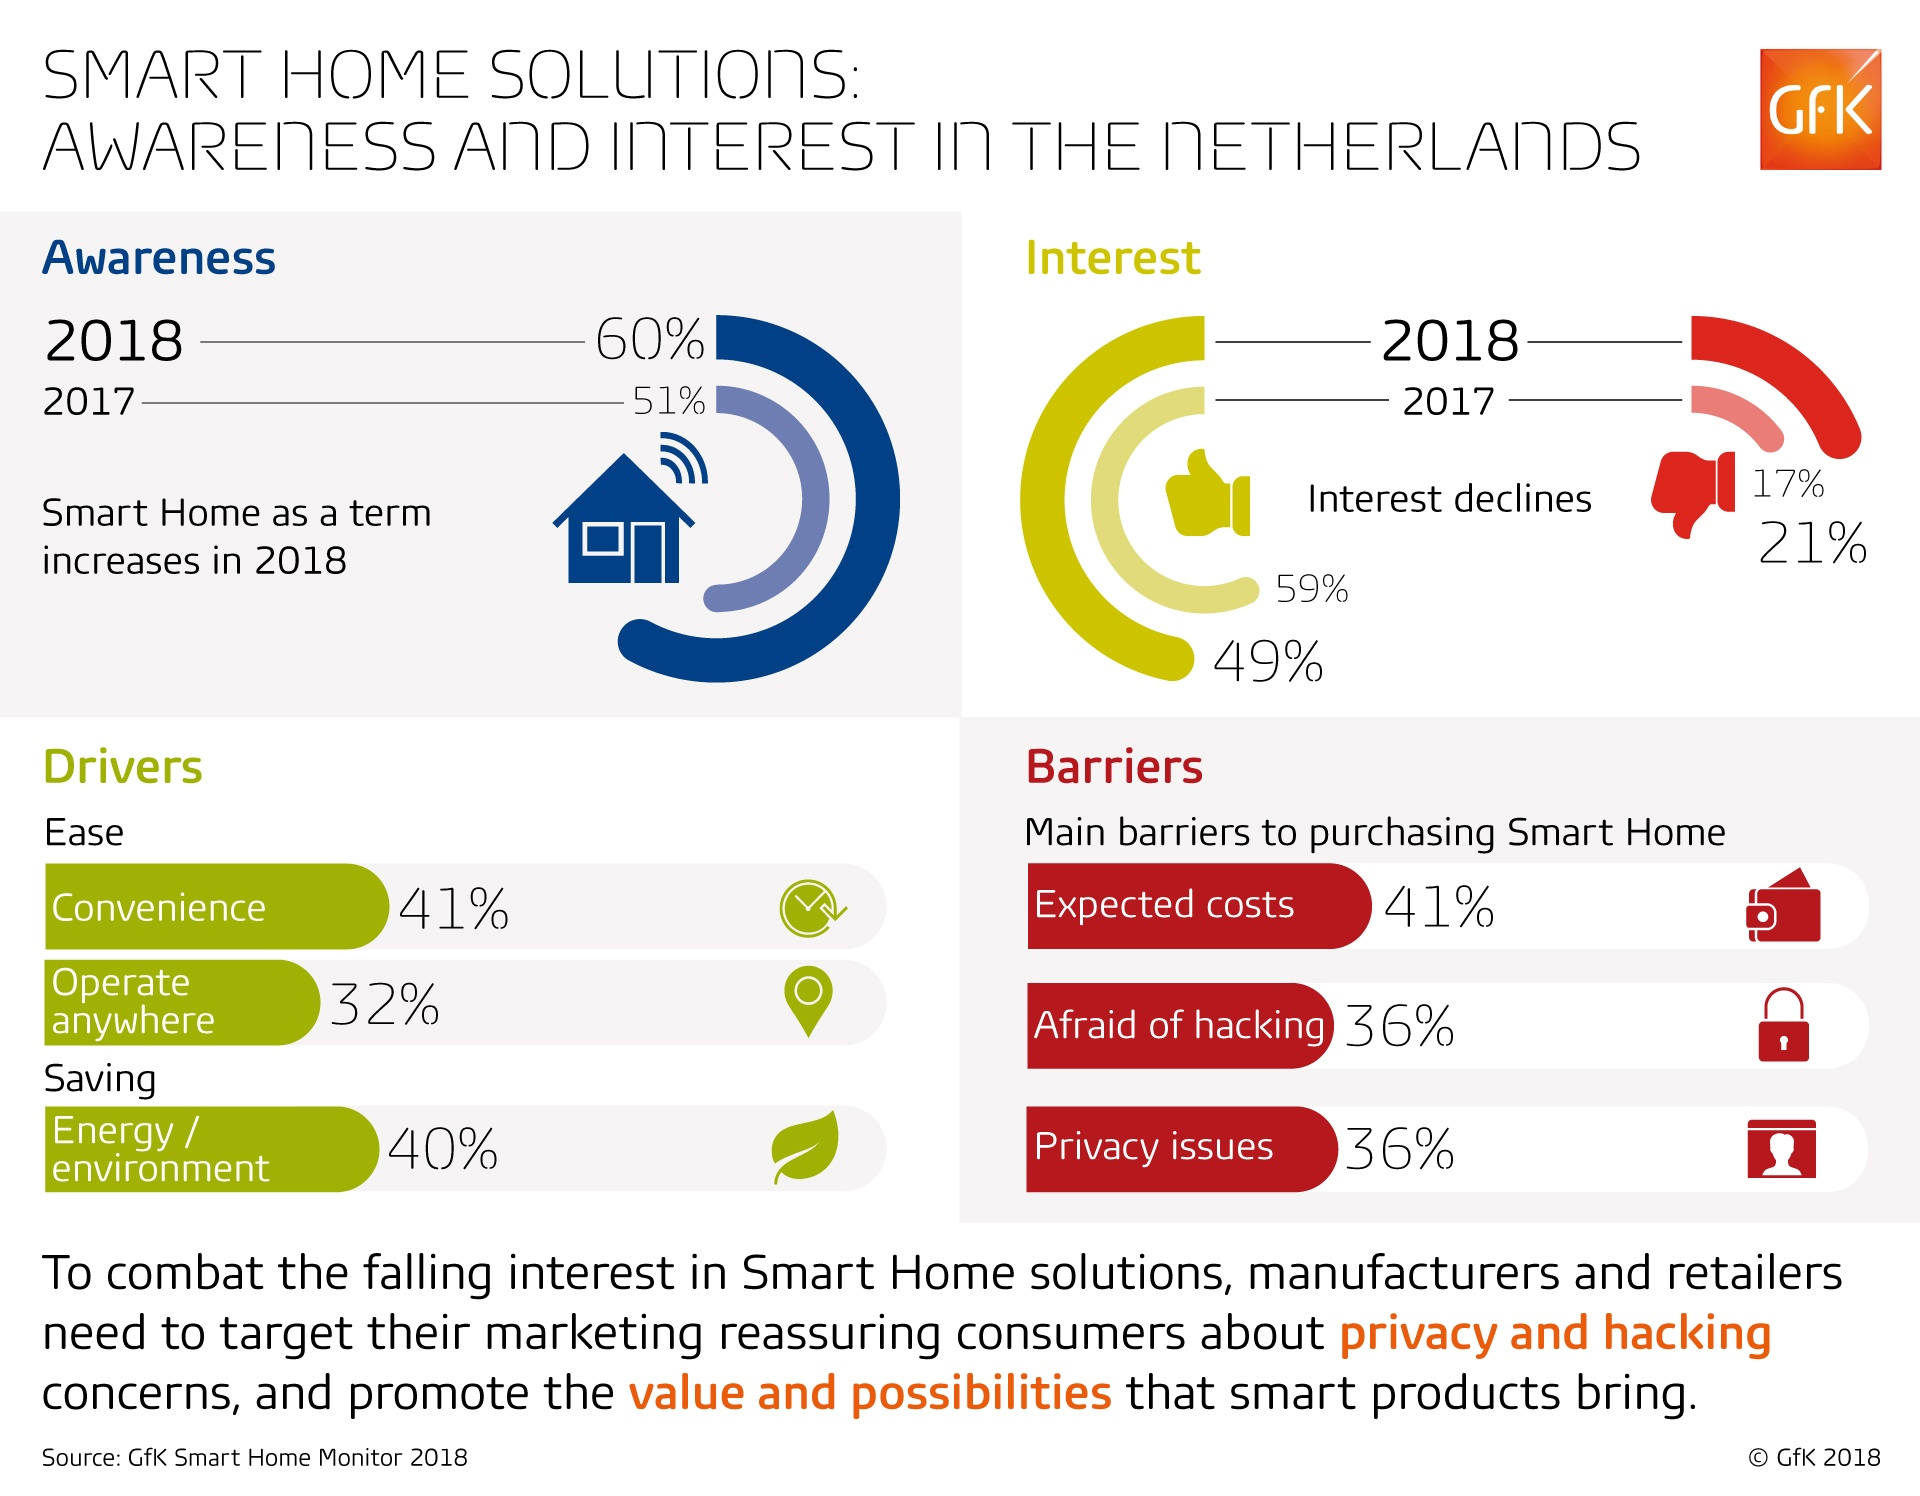 GfK_Smart_home_report_2018_Insights_barriers_fears